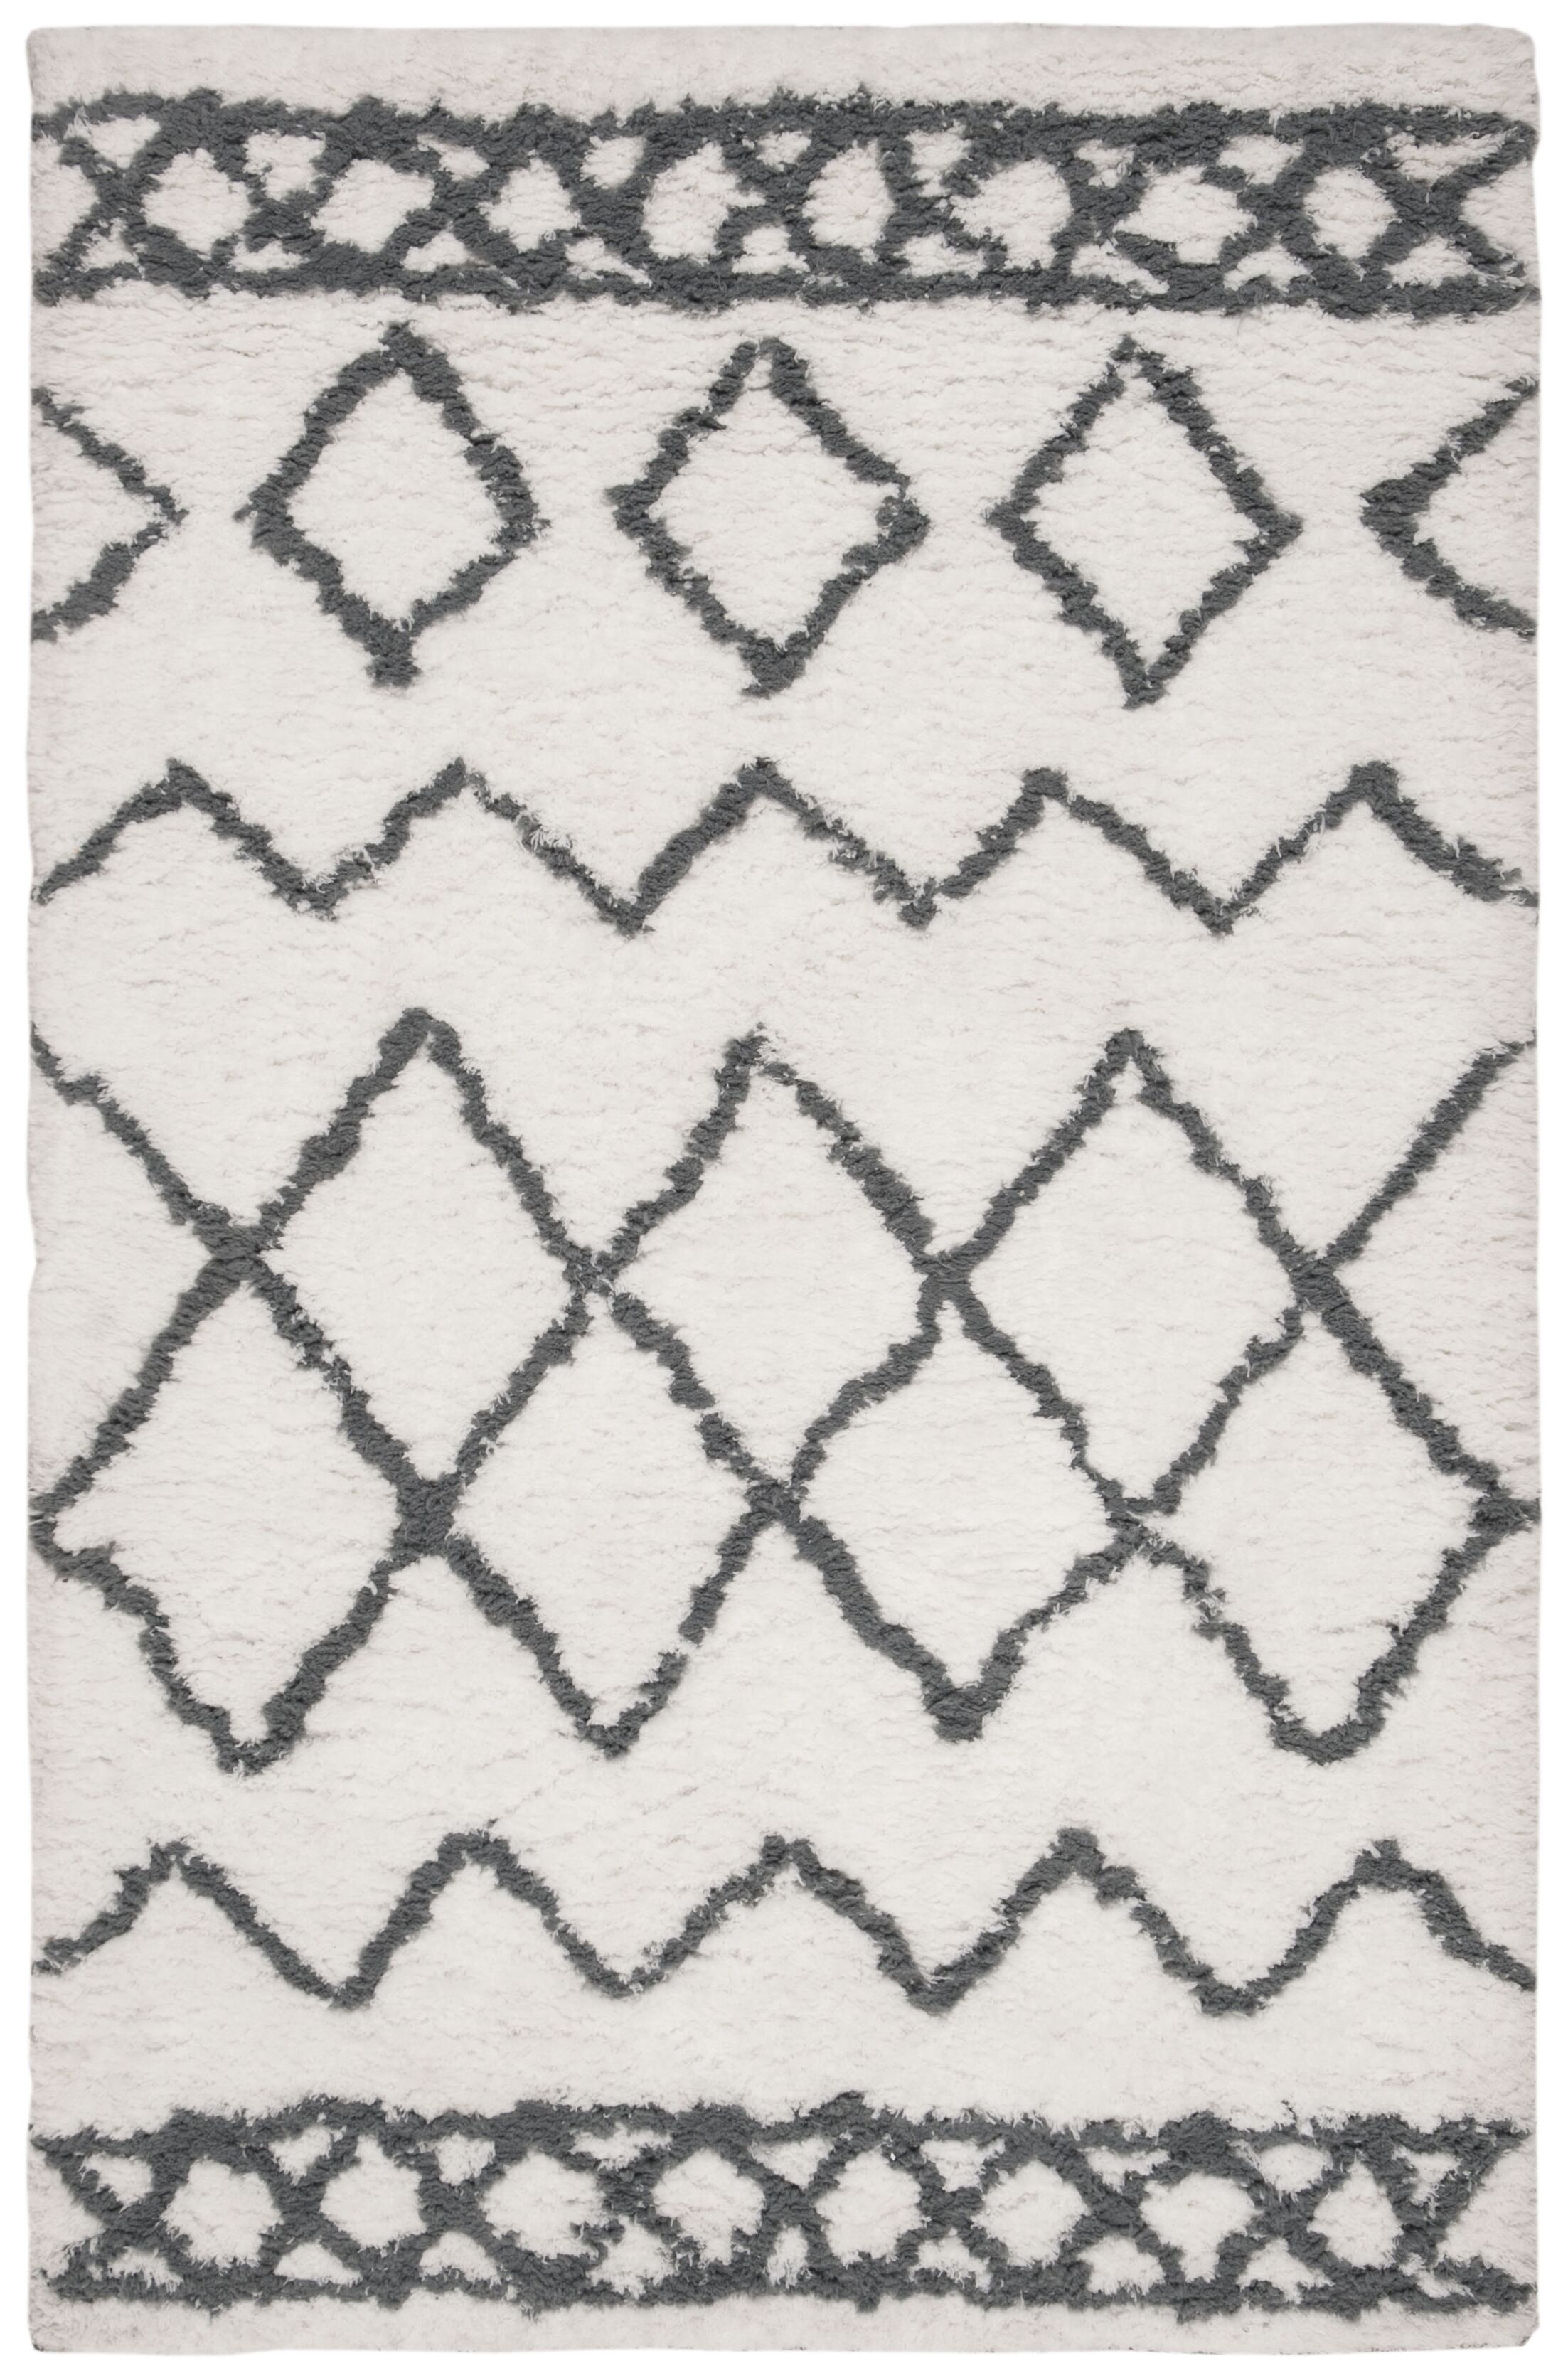 Boyland Shag Hand-Tufted Cream/Gray Area Rug Rug Size: Rectangle 4' X 6'